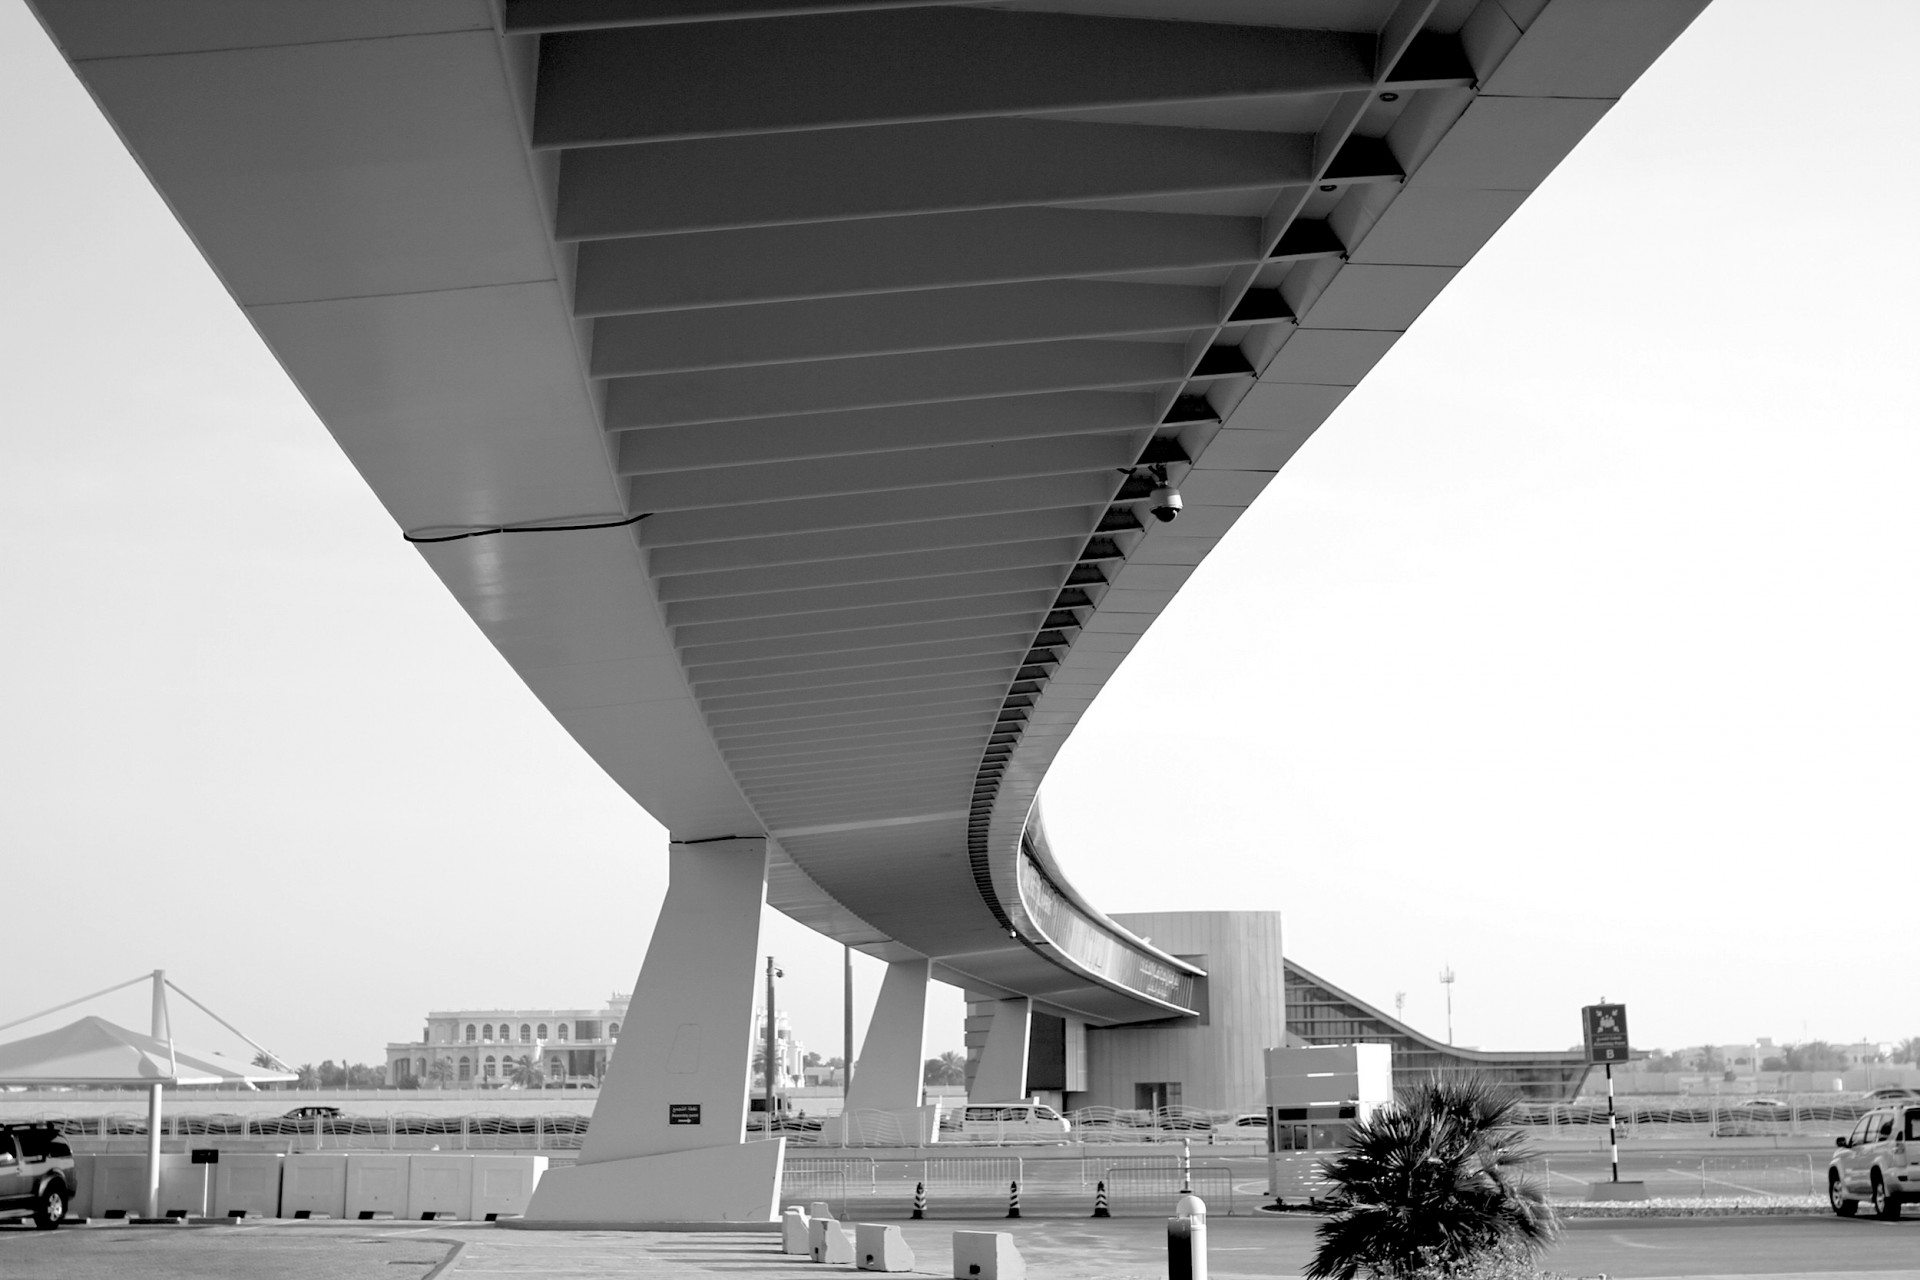 Curved and clear.  The Pedestrian Bridge by Dissing + Weitling at the ADNEC site.